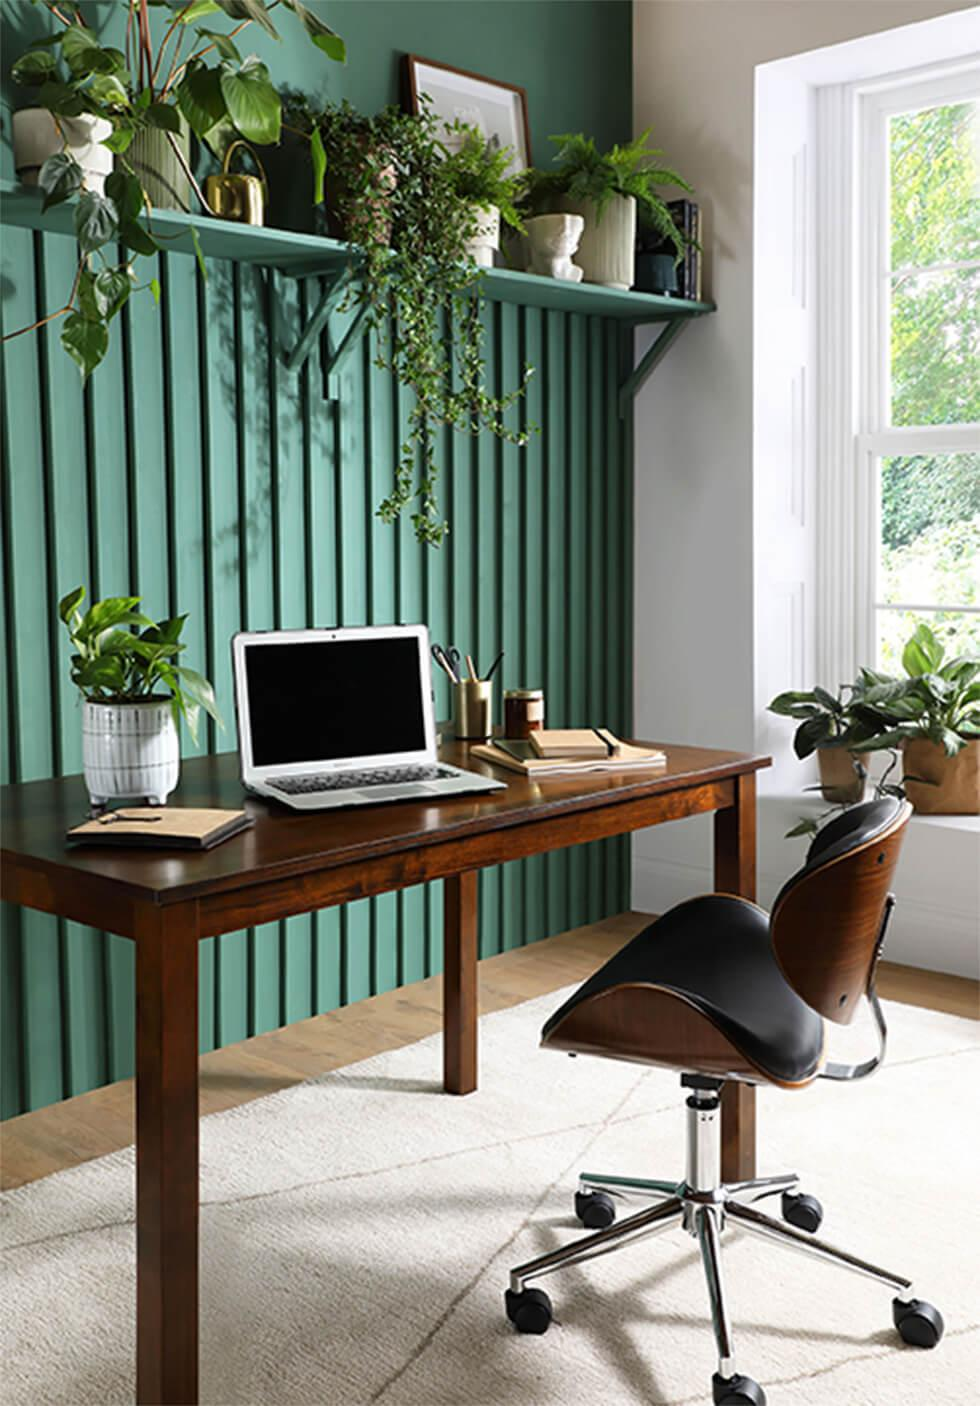 Home office with feature green shiplap wall, indoor plants and dark wood dining table